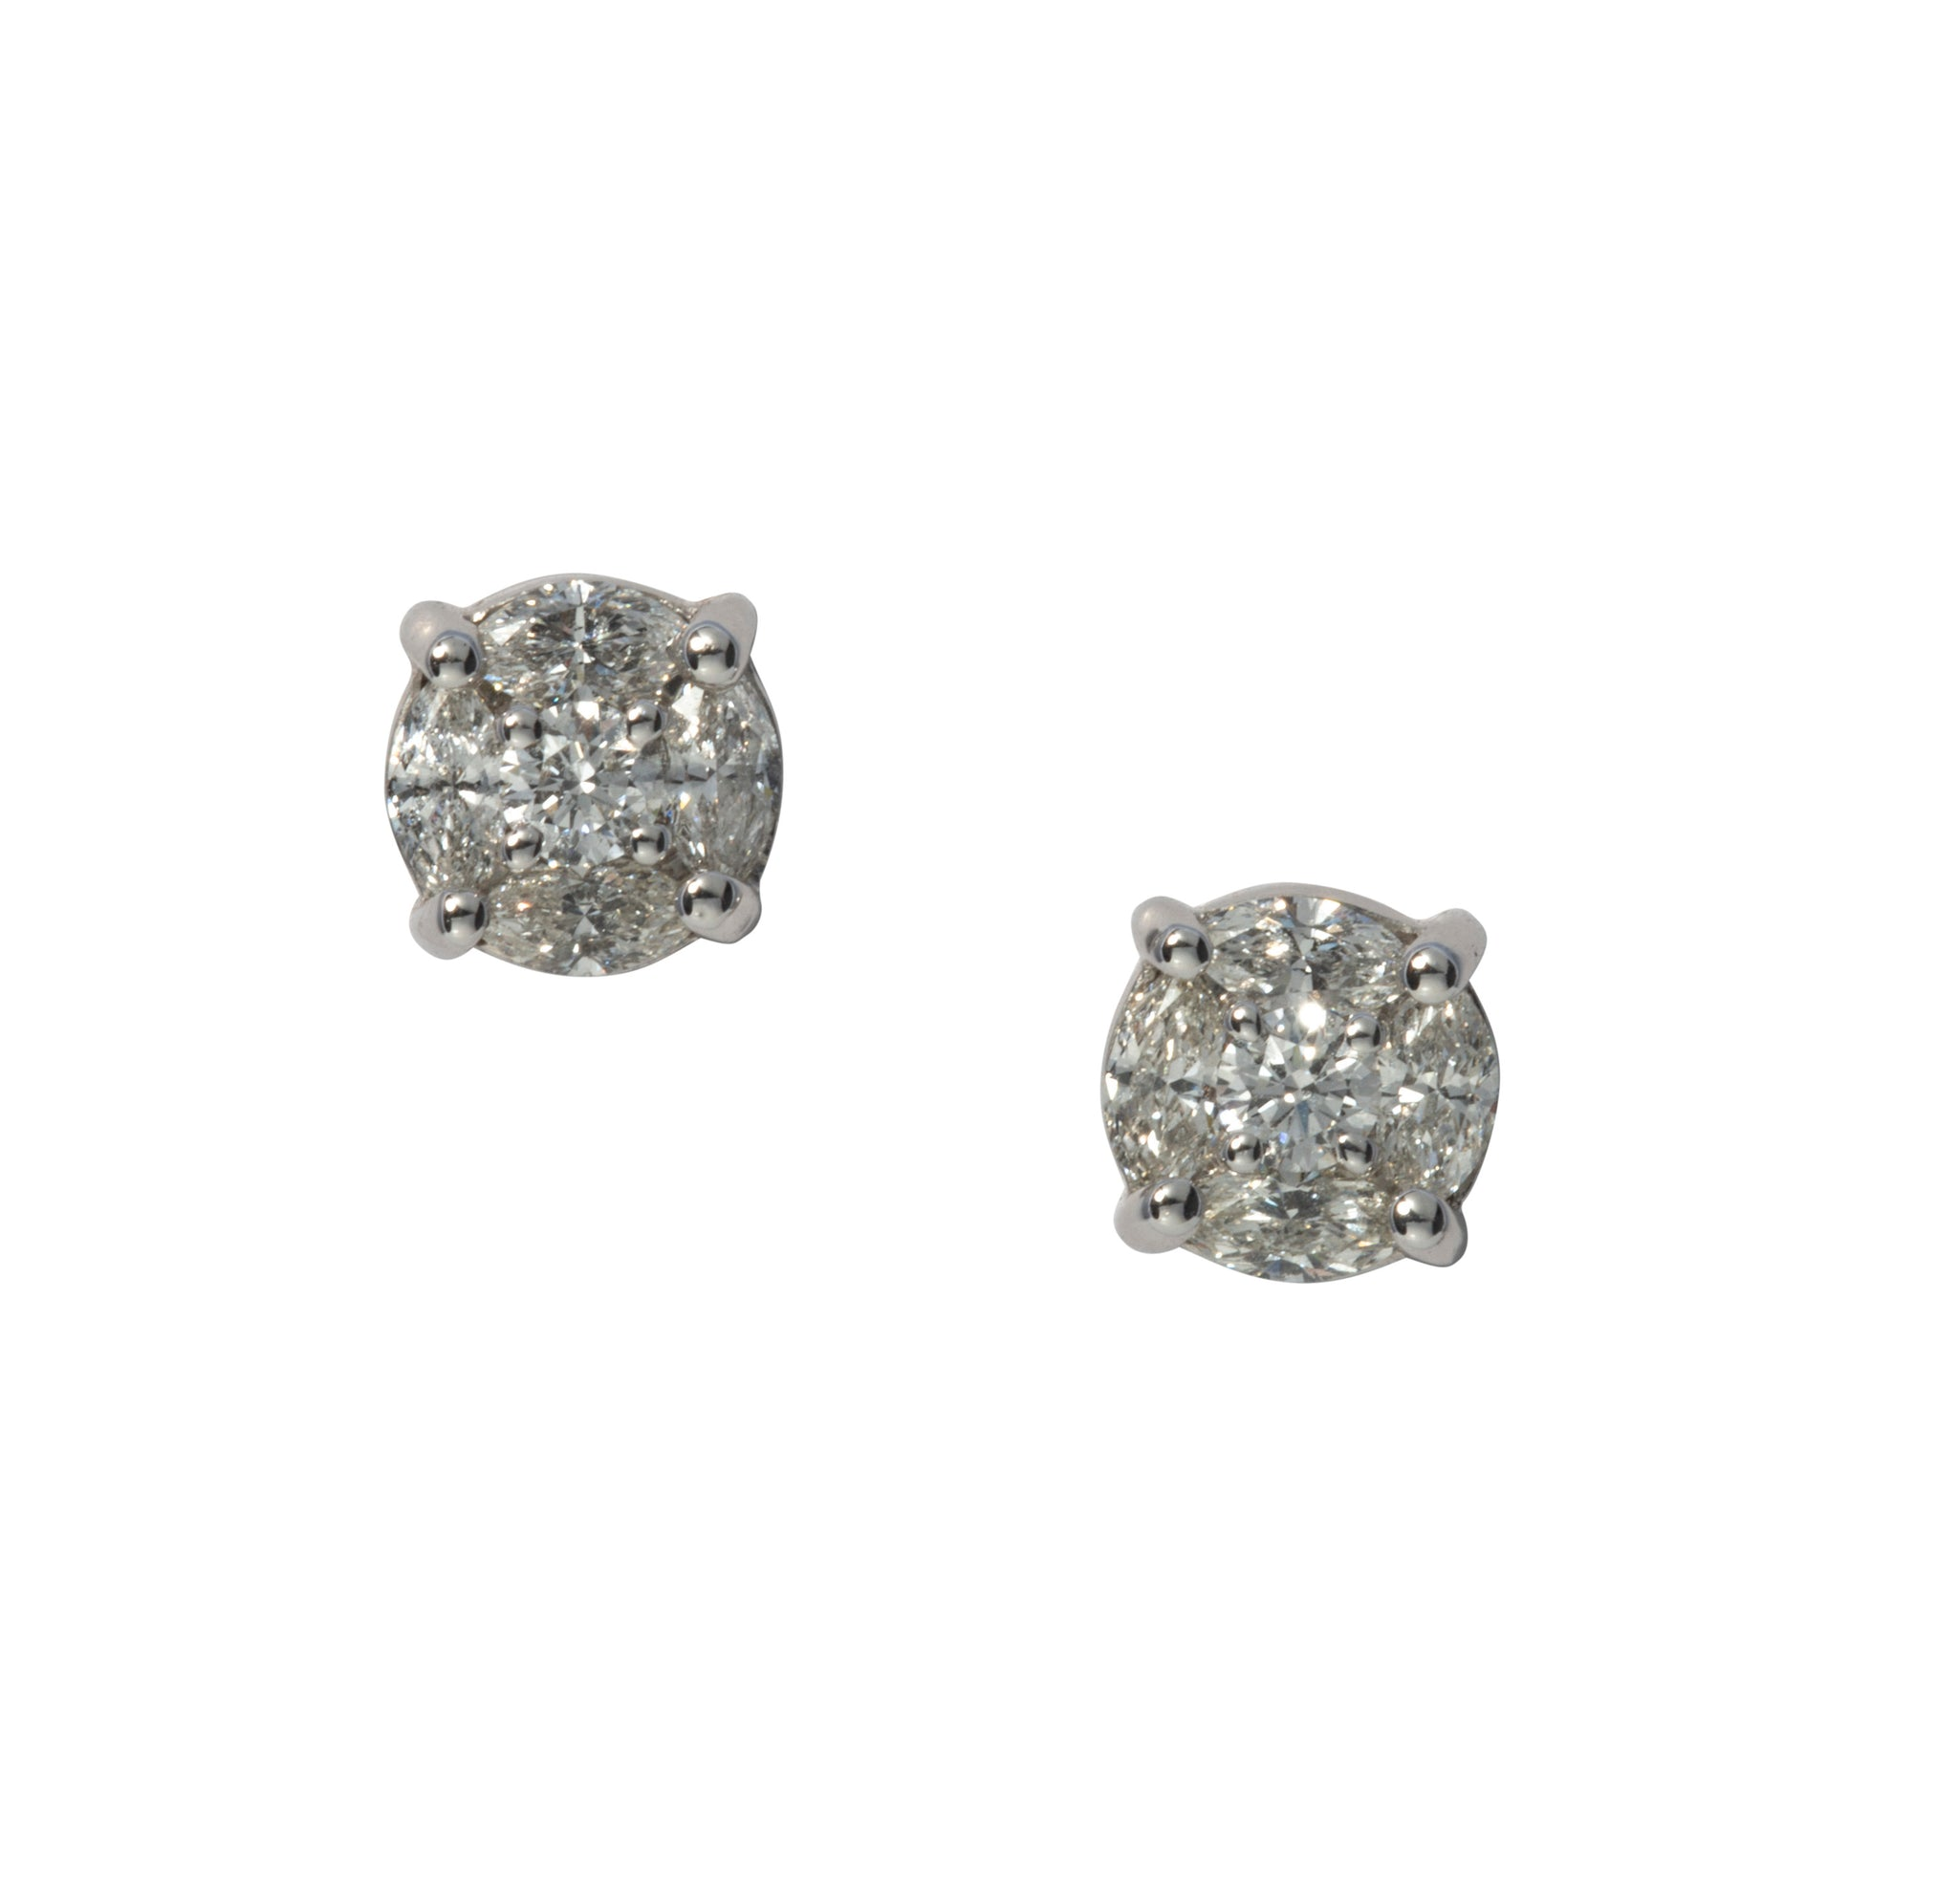 1.04ct Diamond Cluster 14K White Gold Stud Earrings